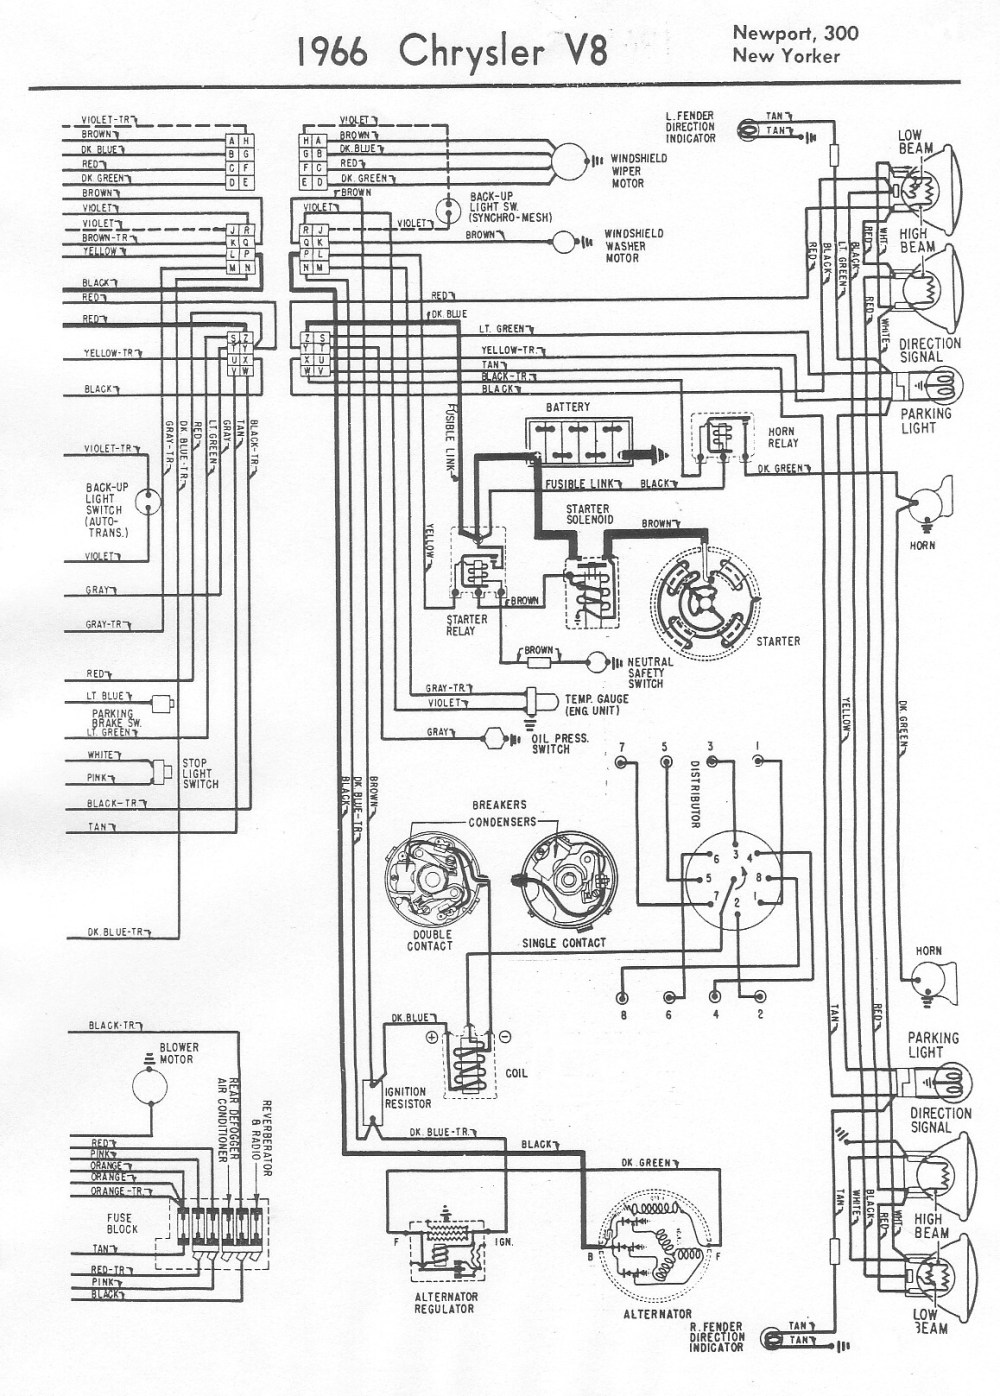 medium resolution of 1965 chrysler new yorker wiring diagram 1965 chrysler boat dodge wiring diagram wiring diagram 2000 chrysler voyager